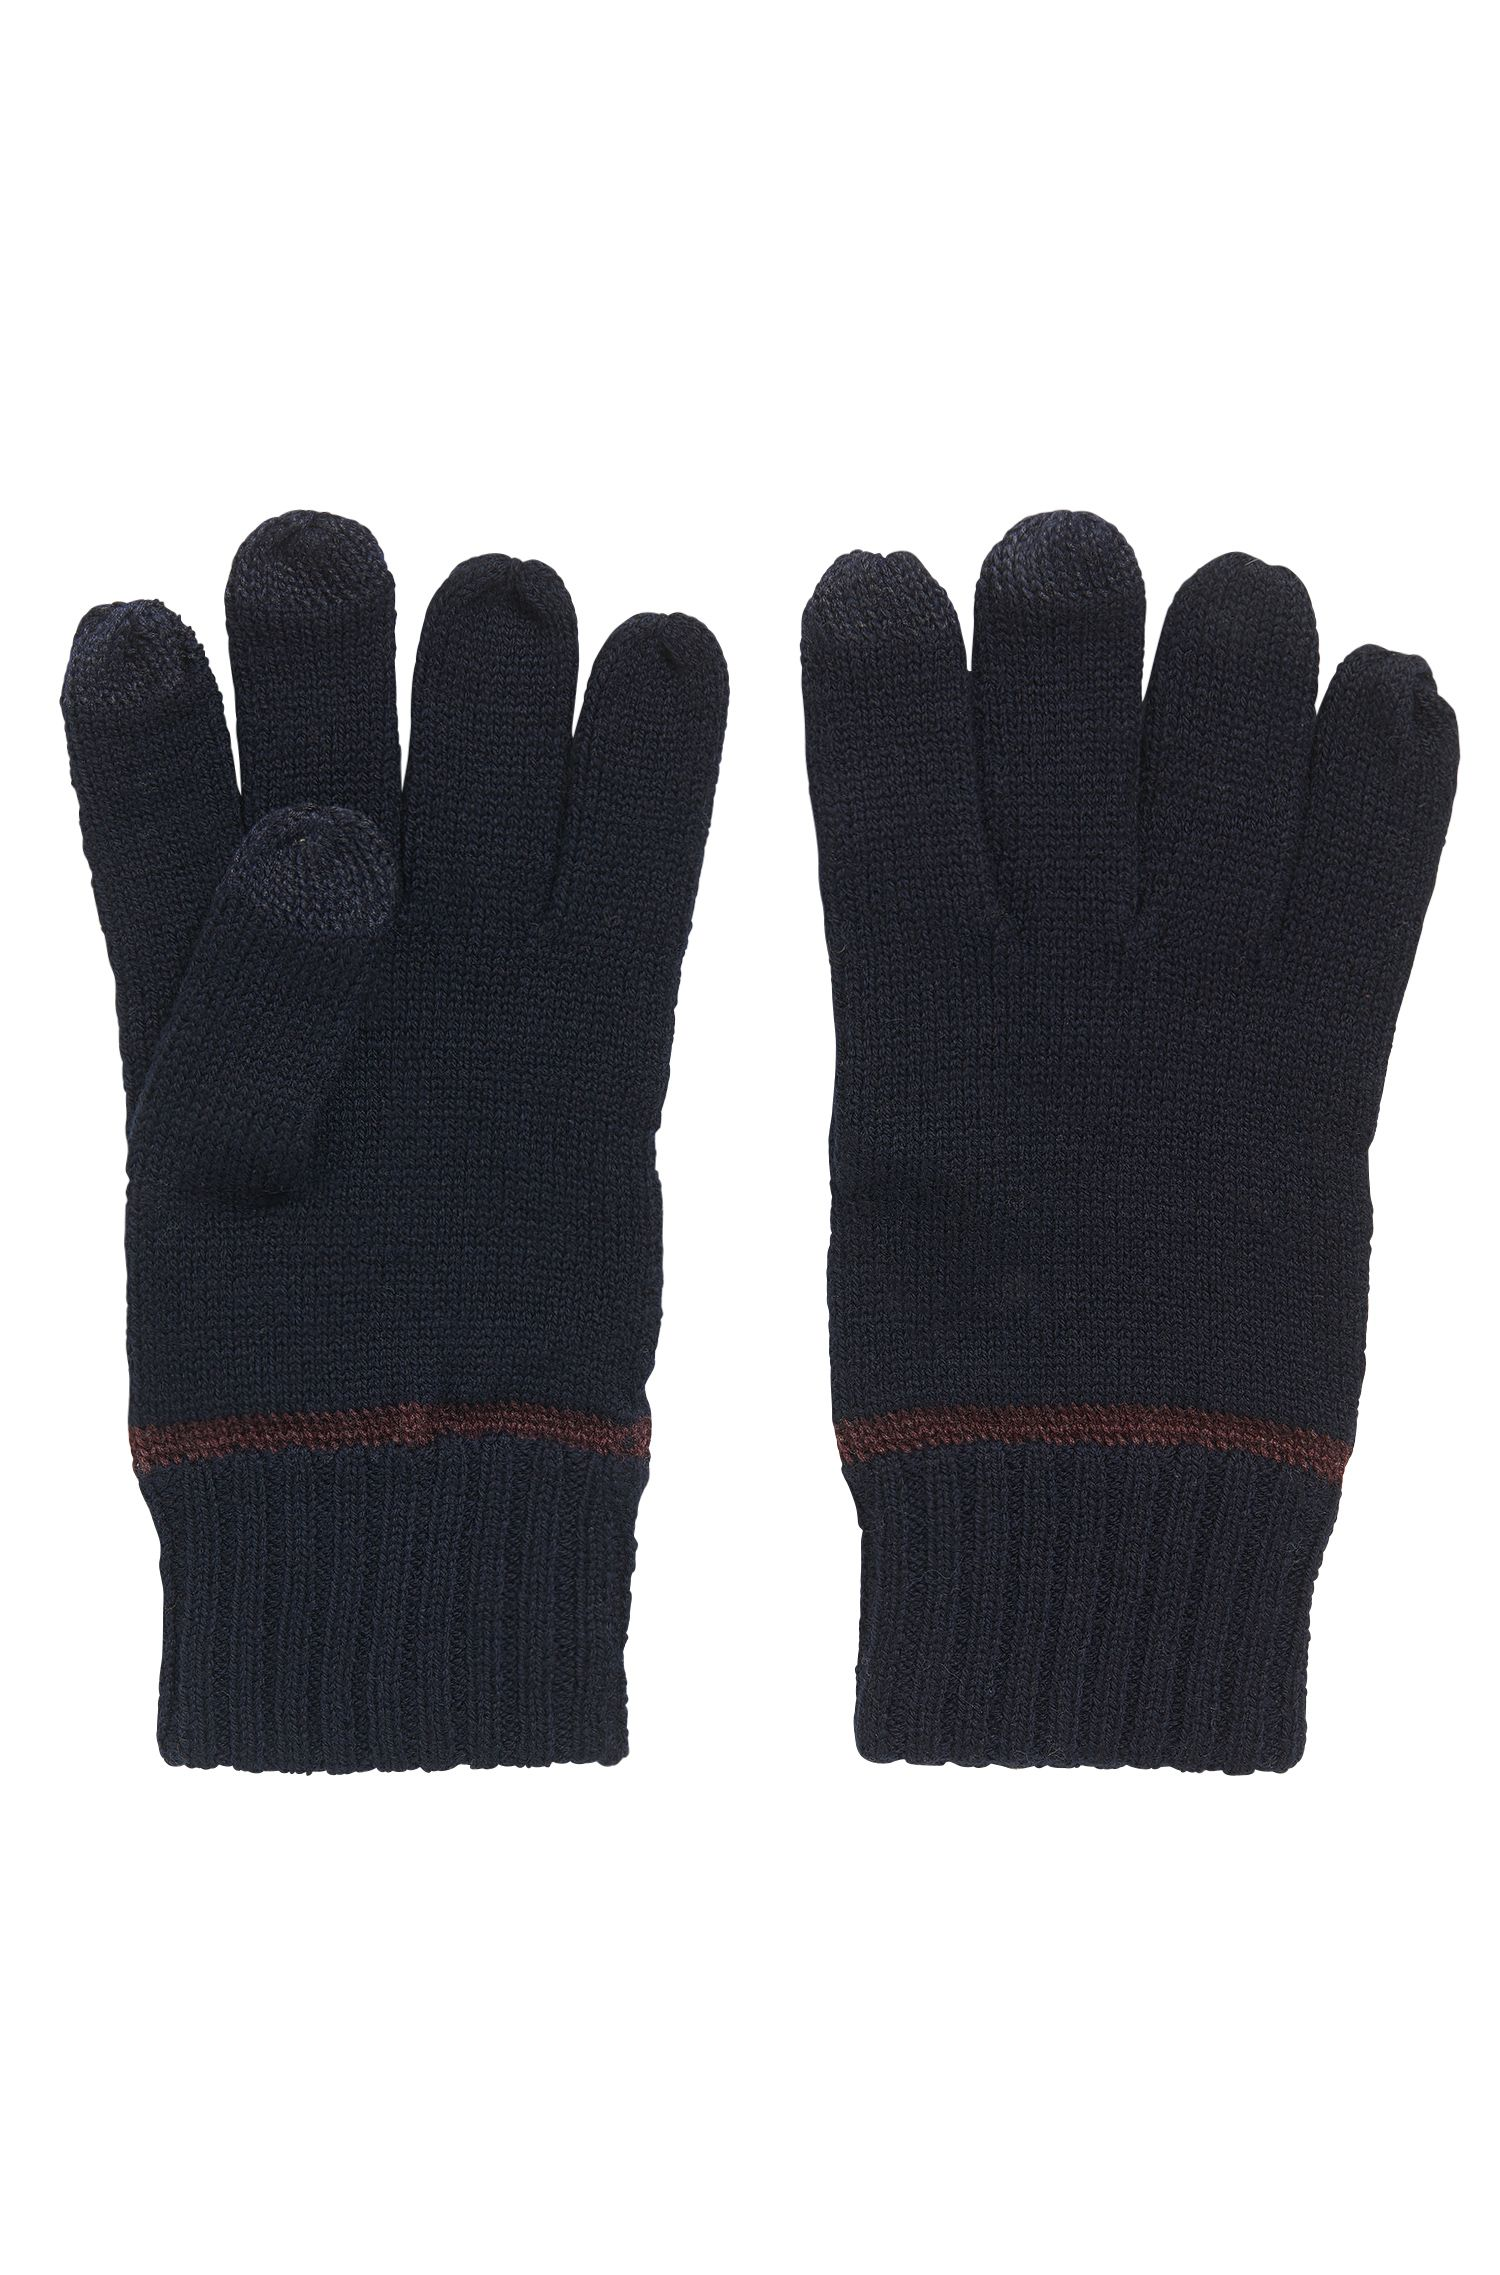 Wool-blend gloves with touchscreen functionality